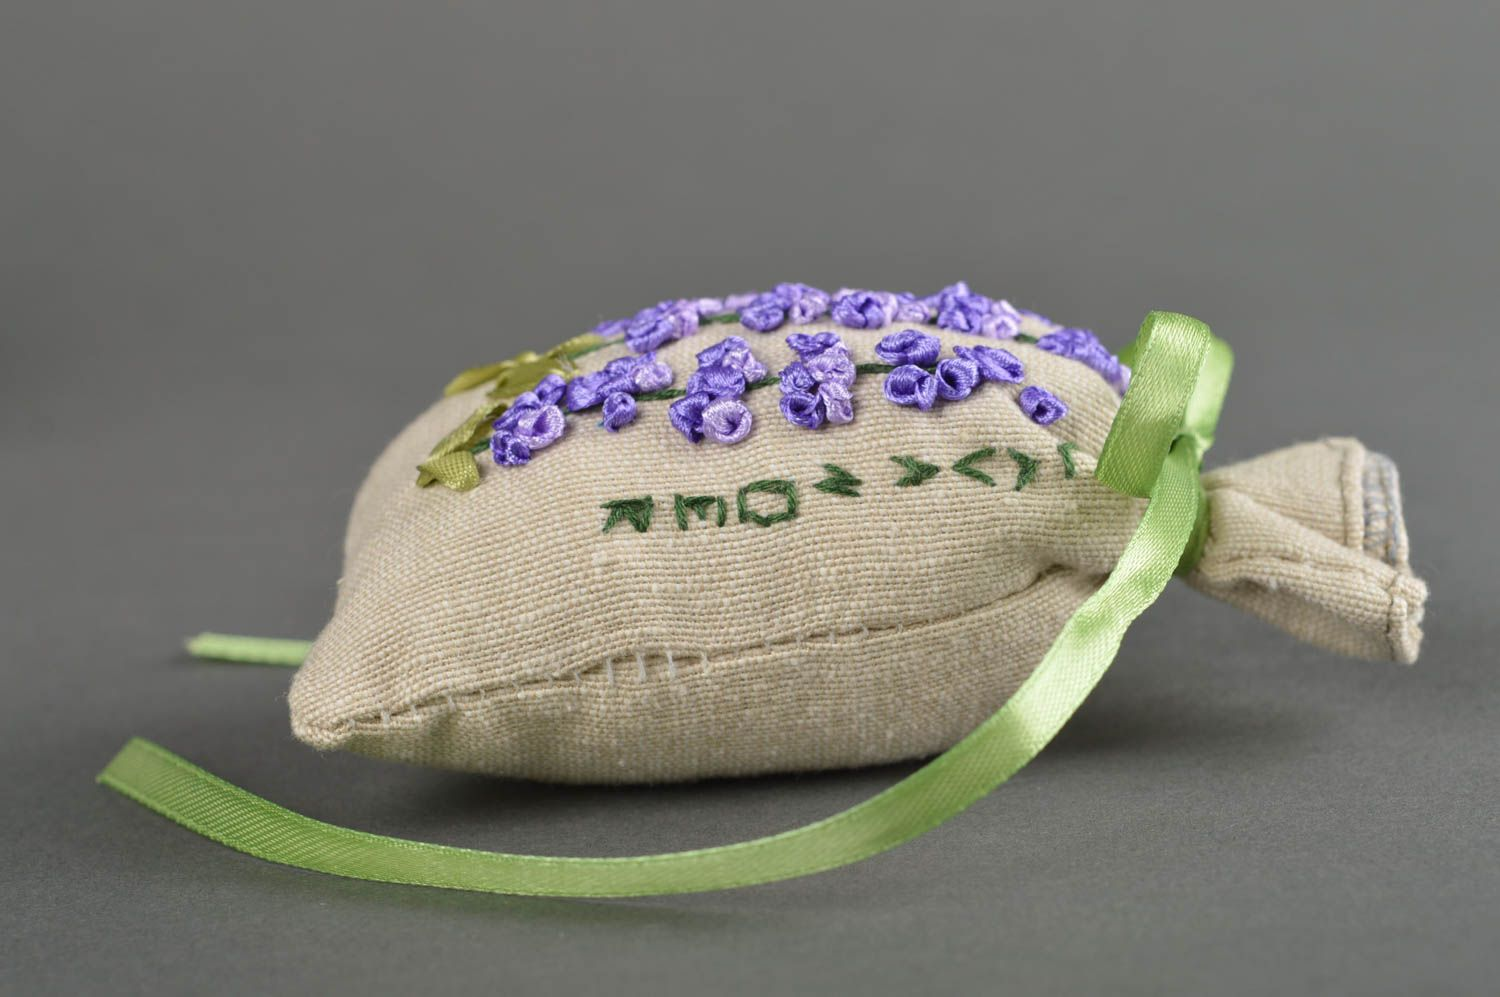 Handmade bags for aromatic sachets cute embroidered bag decorative use only photo 4